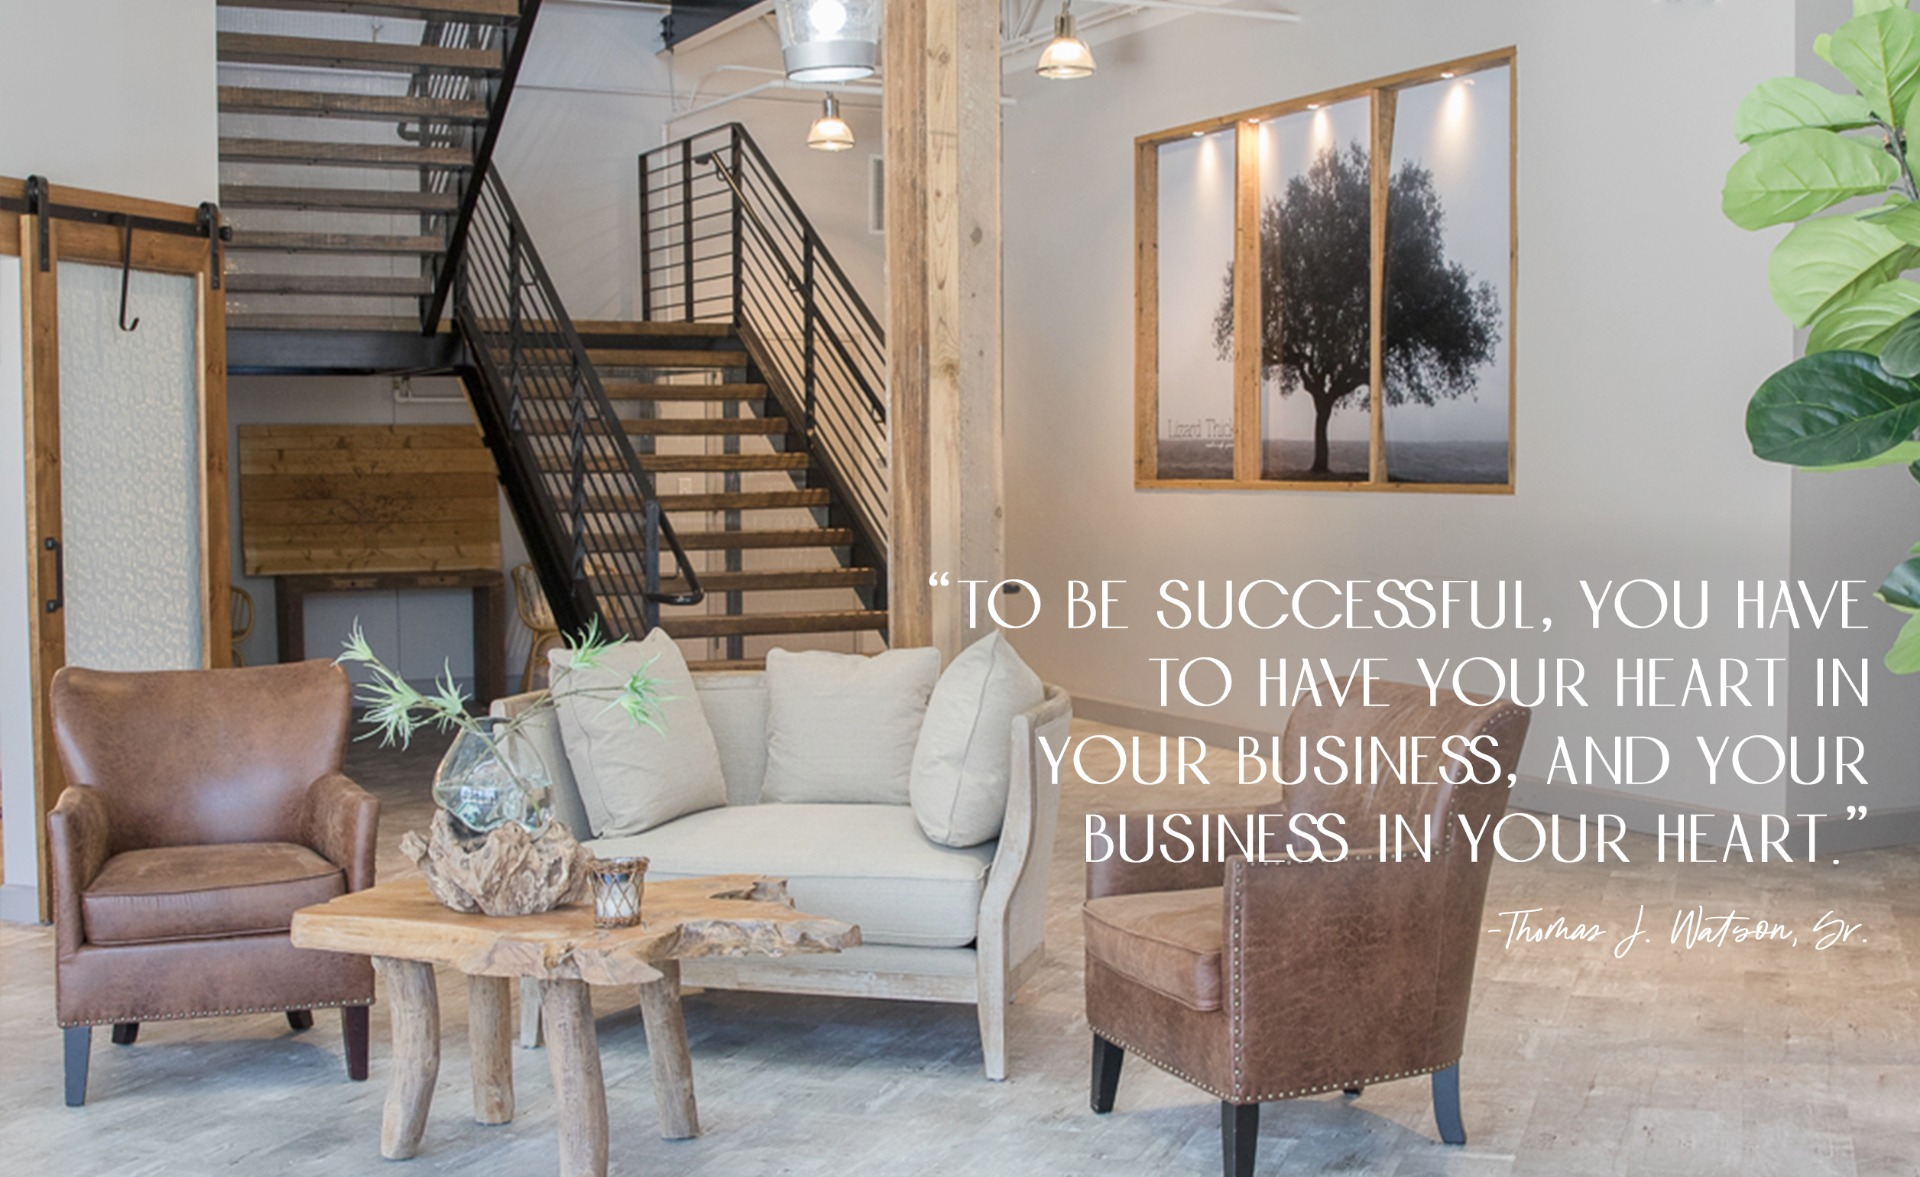 To be successful, you have to have your heart in your business, and your business in your heart. - Thomas J Watson, Sr.